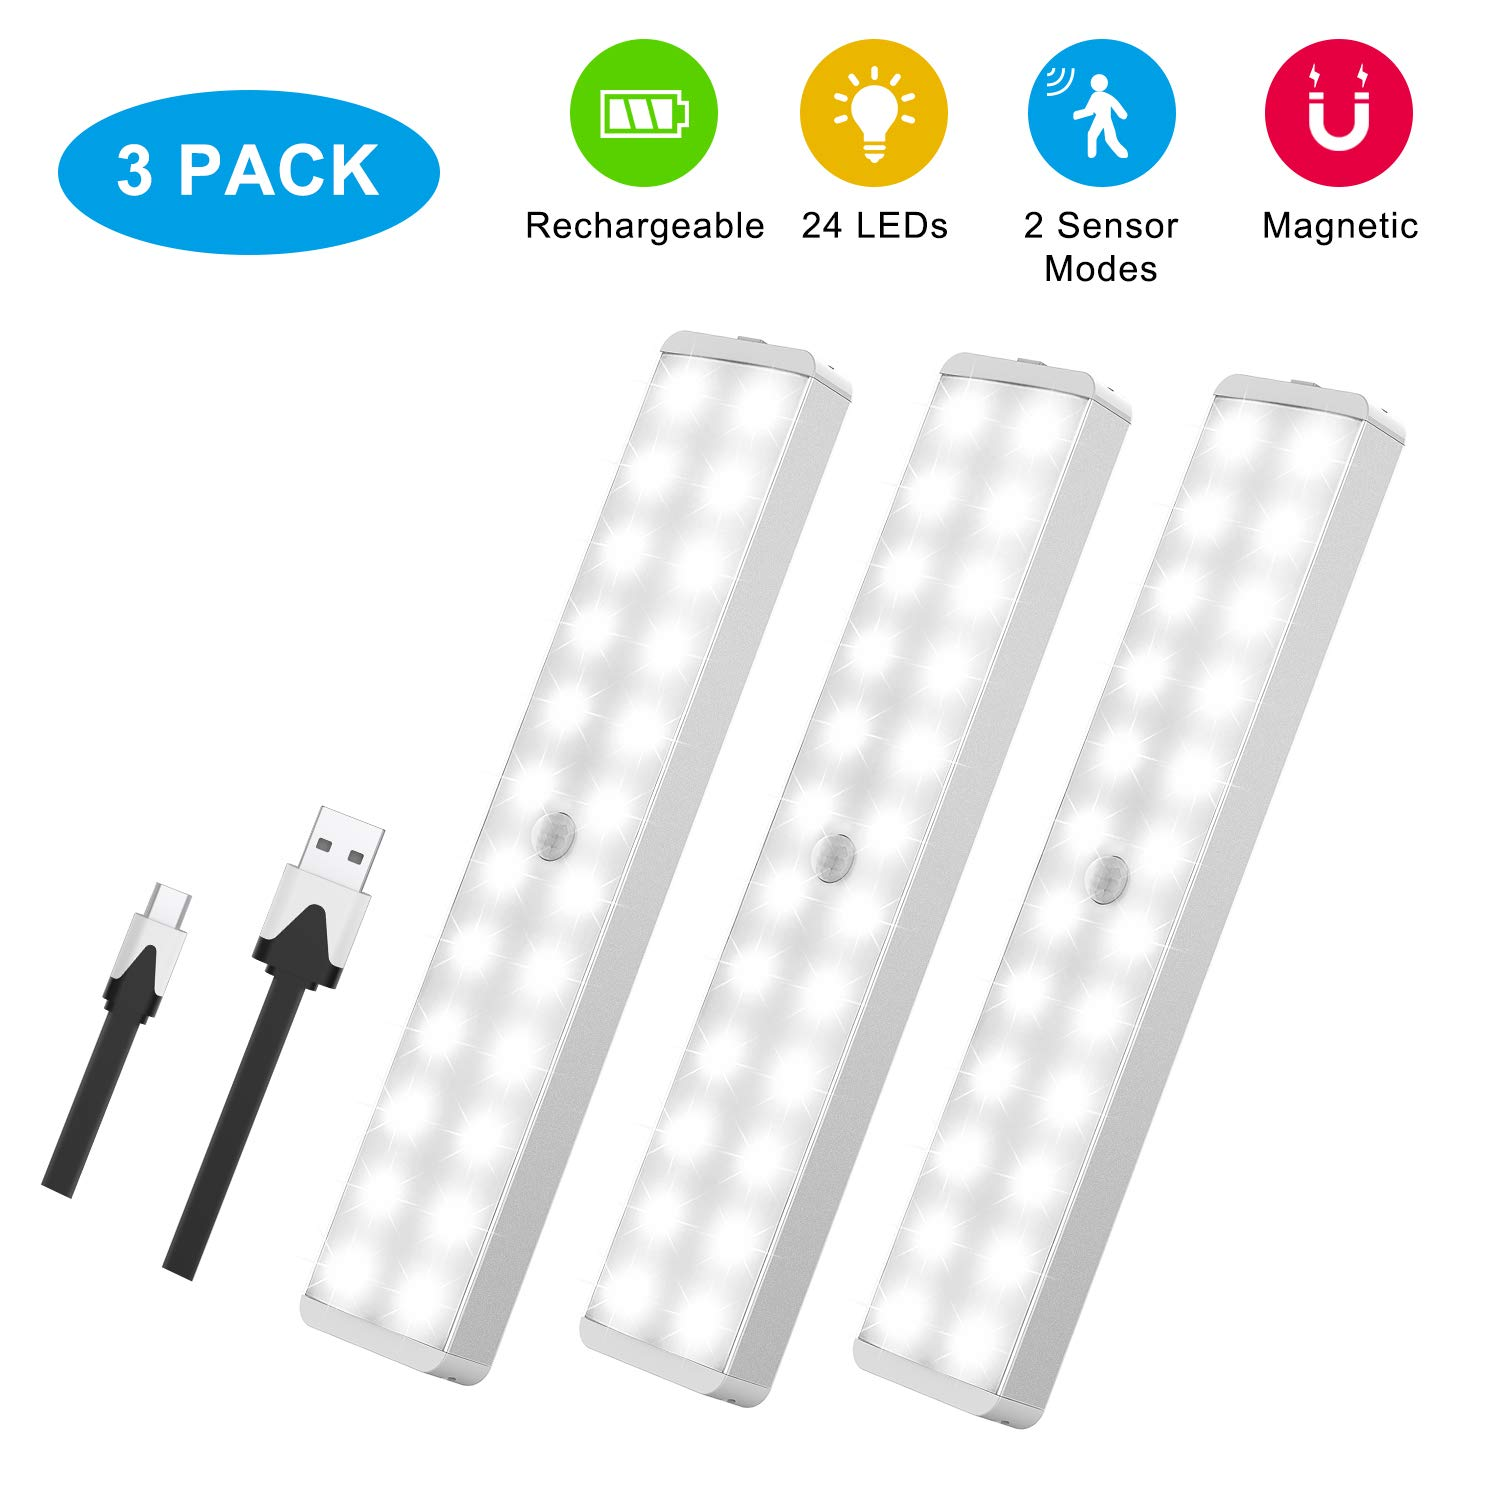 LED Closet Light, 24-LED Rechargeable Motion Sensor Closet Light Wireless Under Cabinet Light Stick on Night Light Bar for Closet Hallway Cabinet Stairway Wardrobe Kitchen 2 Sensor Modes (3 Pack)